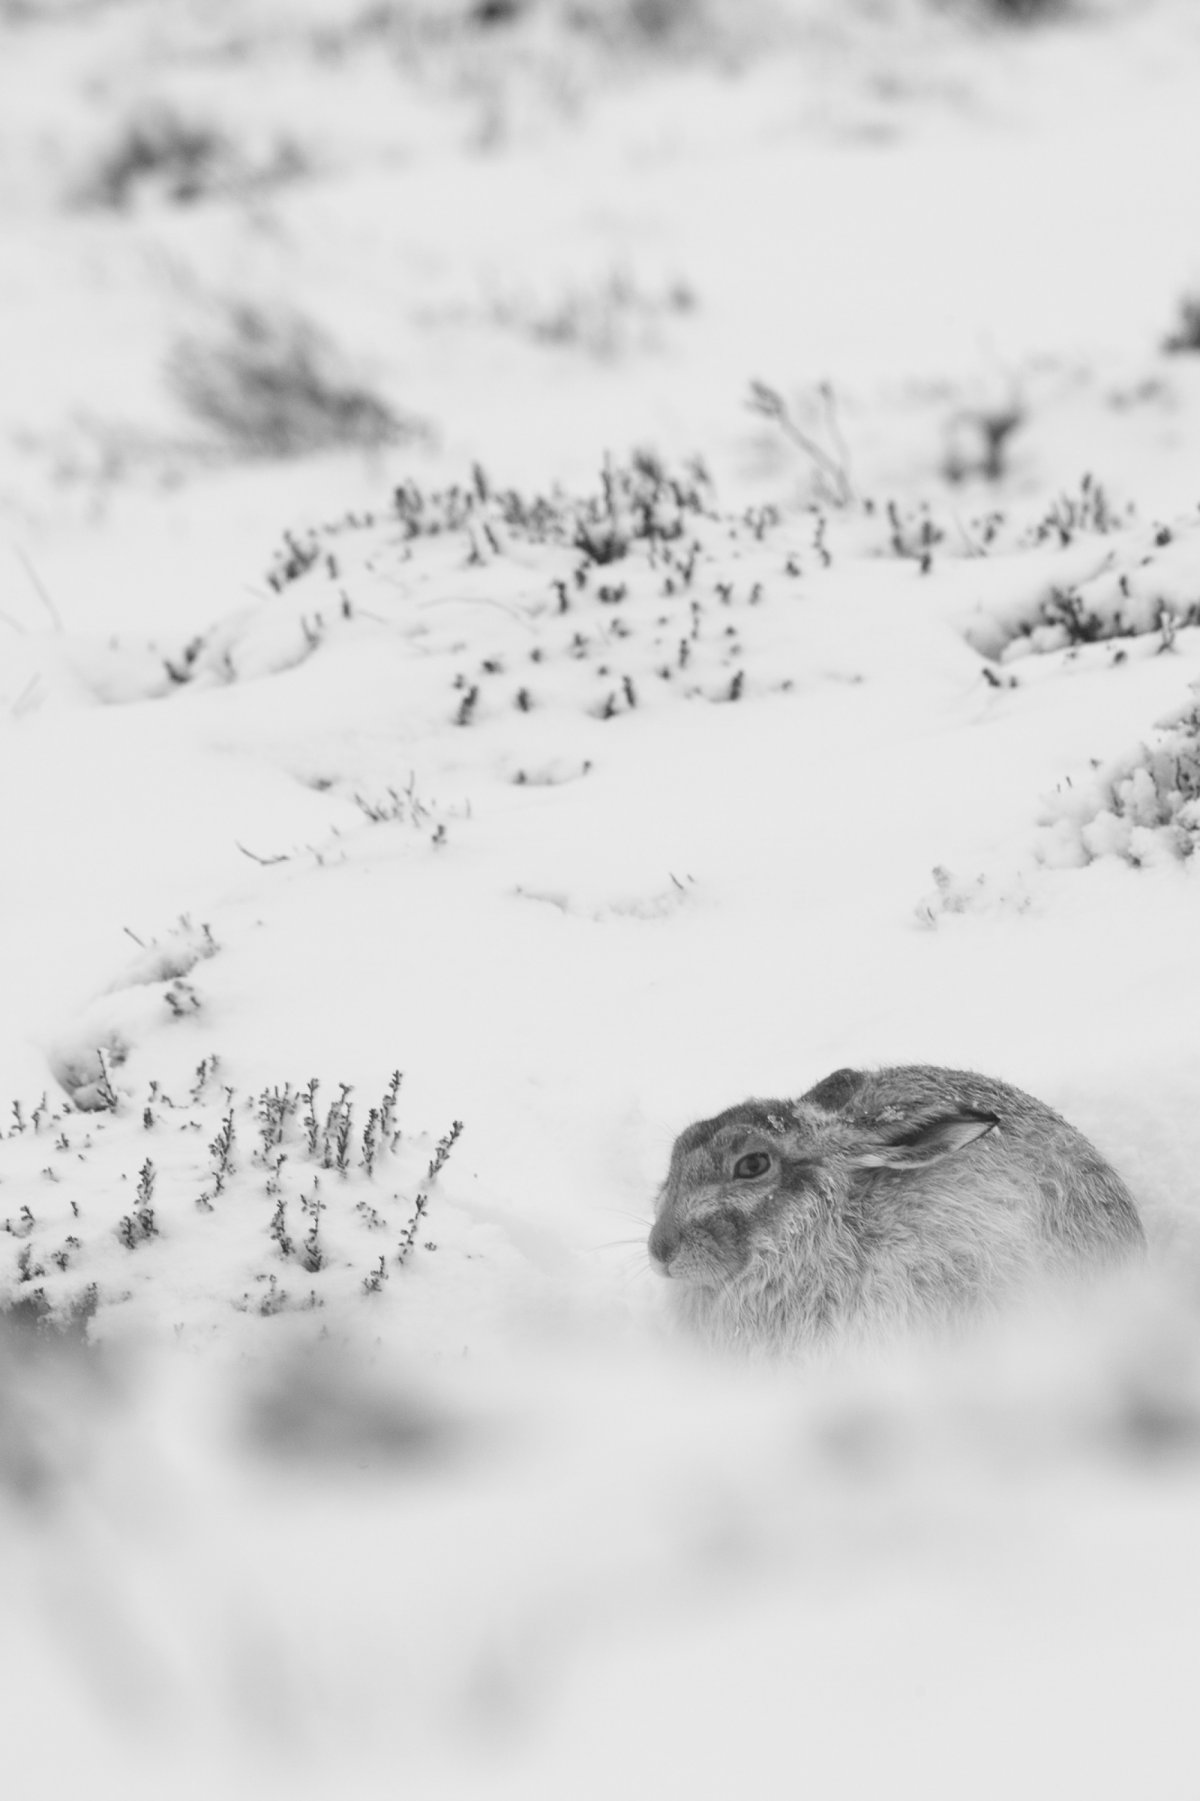 Mountain hare sat on snowy background